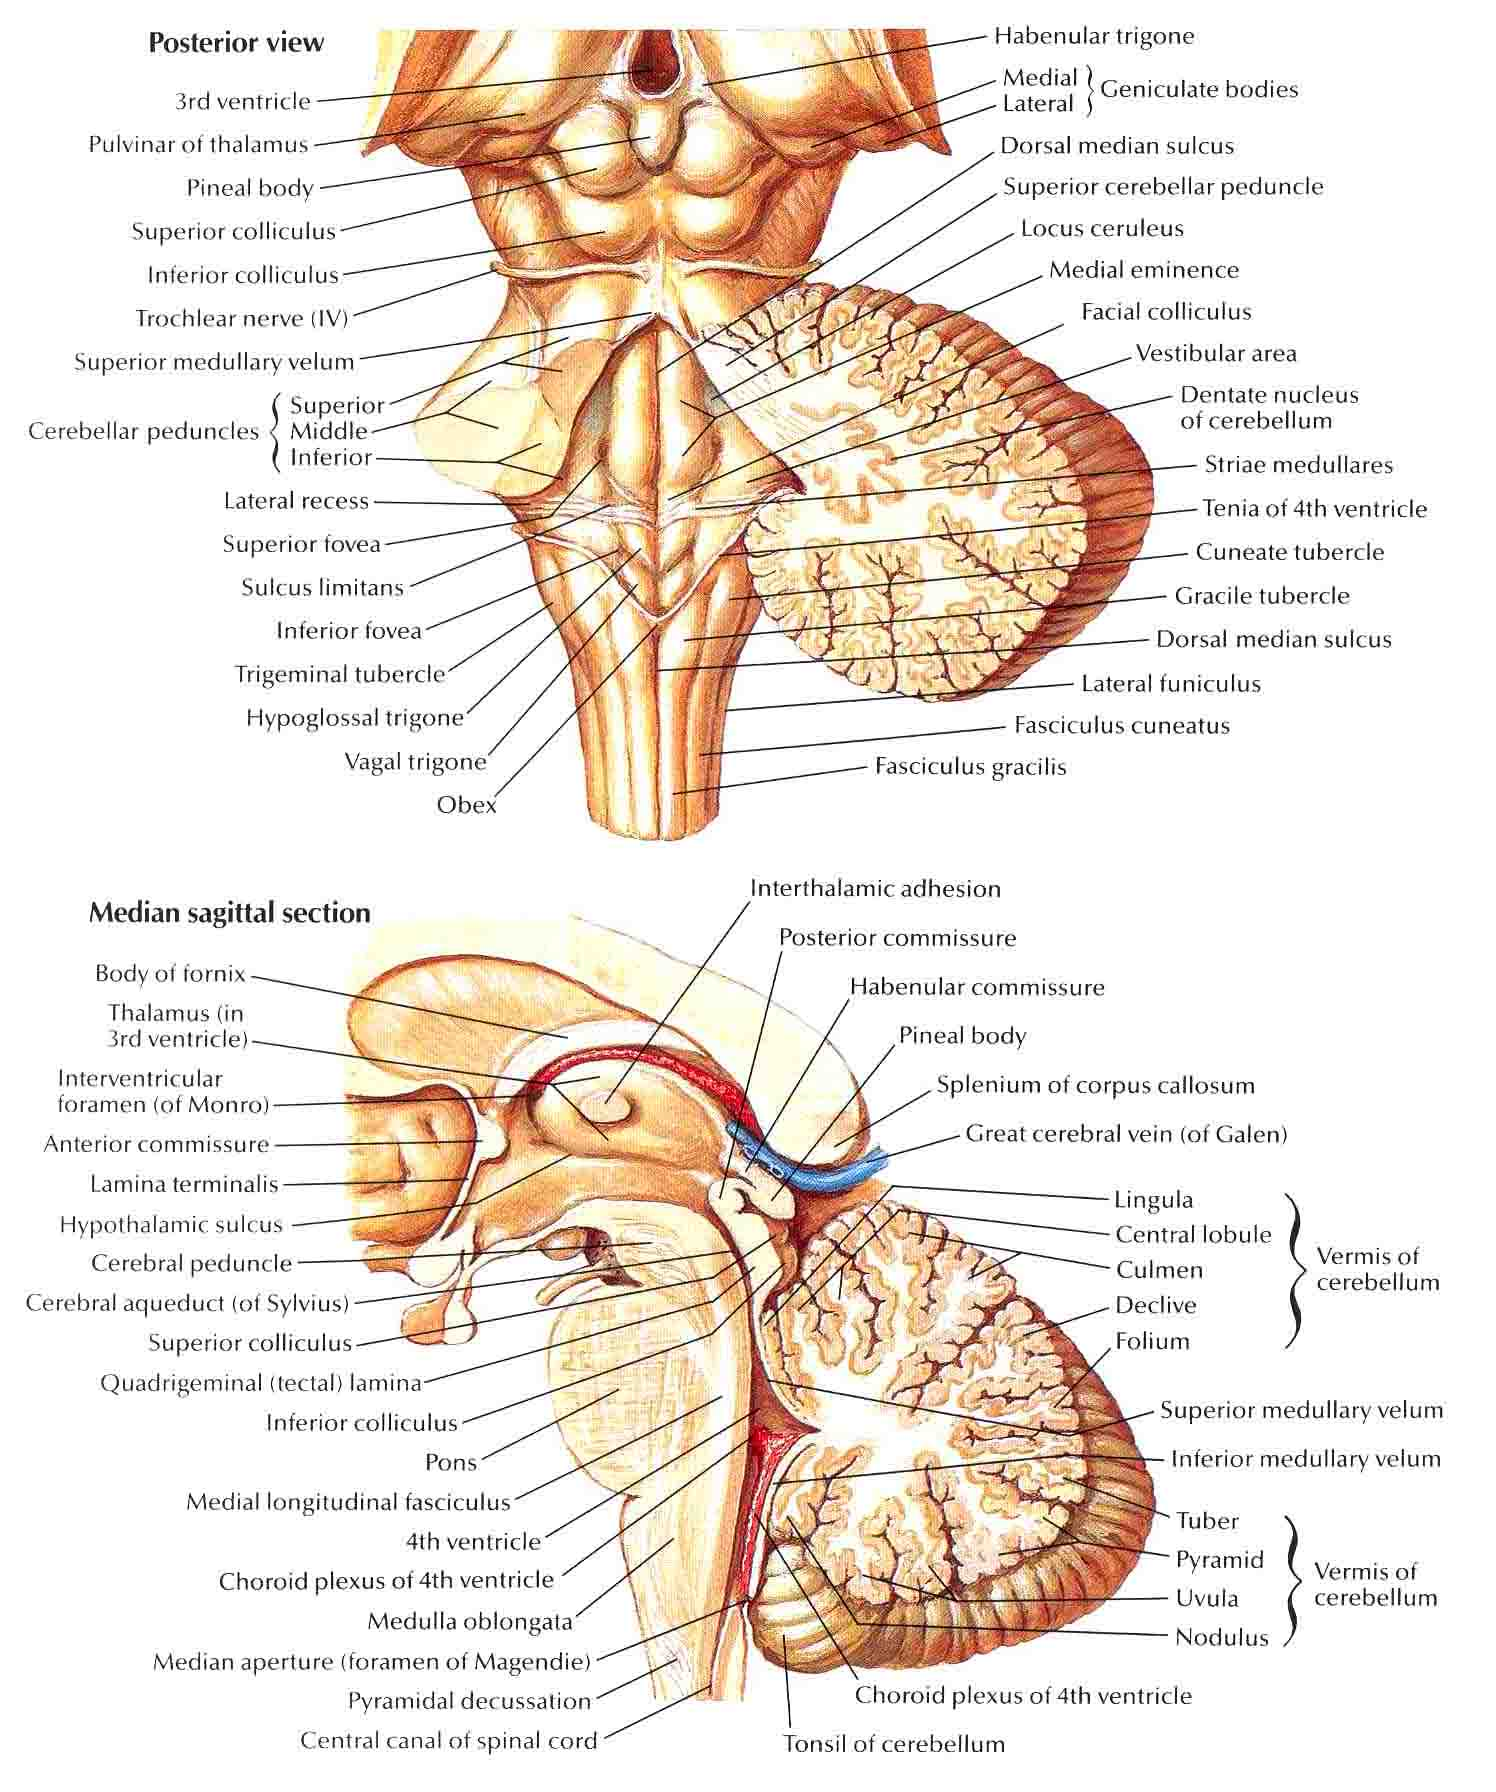 A head and neck for Floor of 4th ventricle